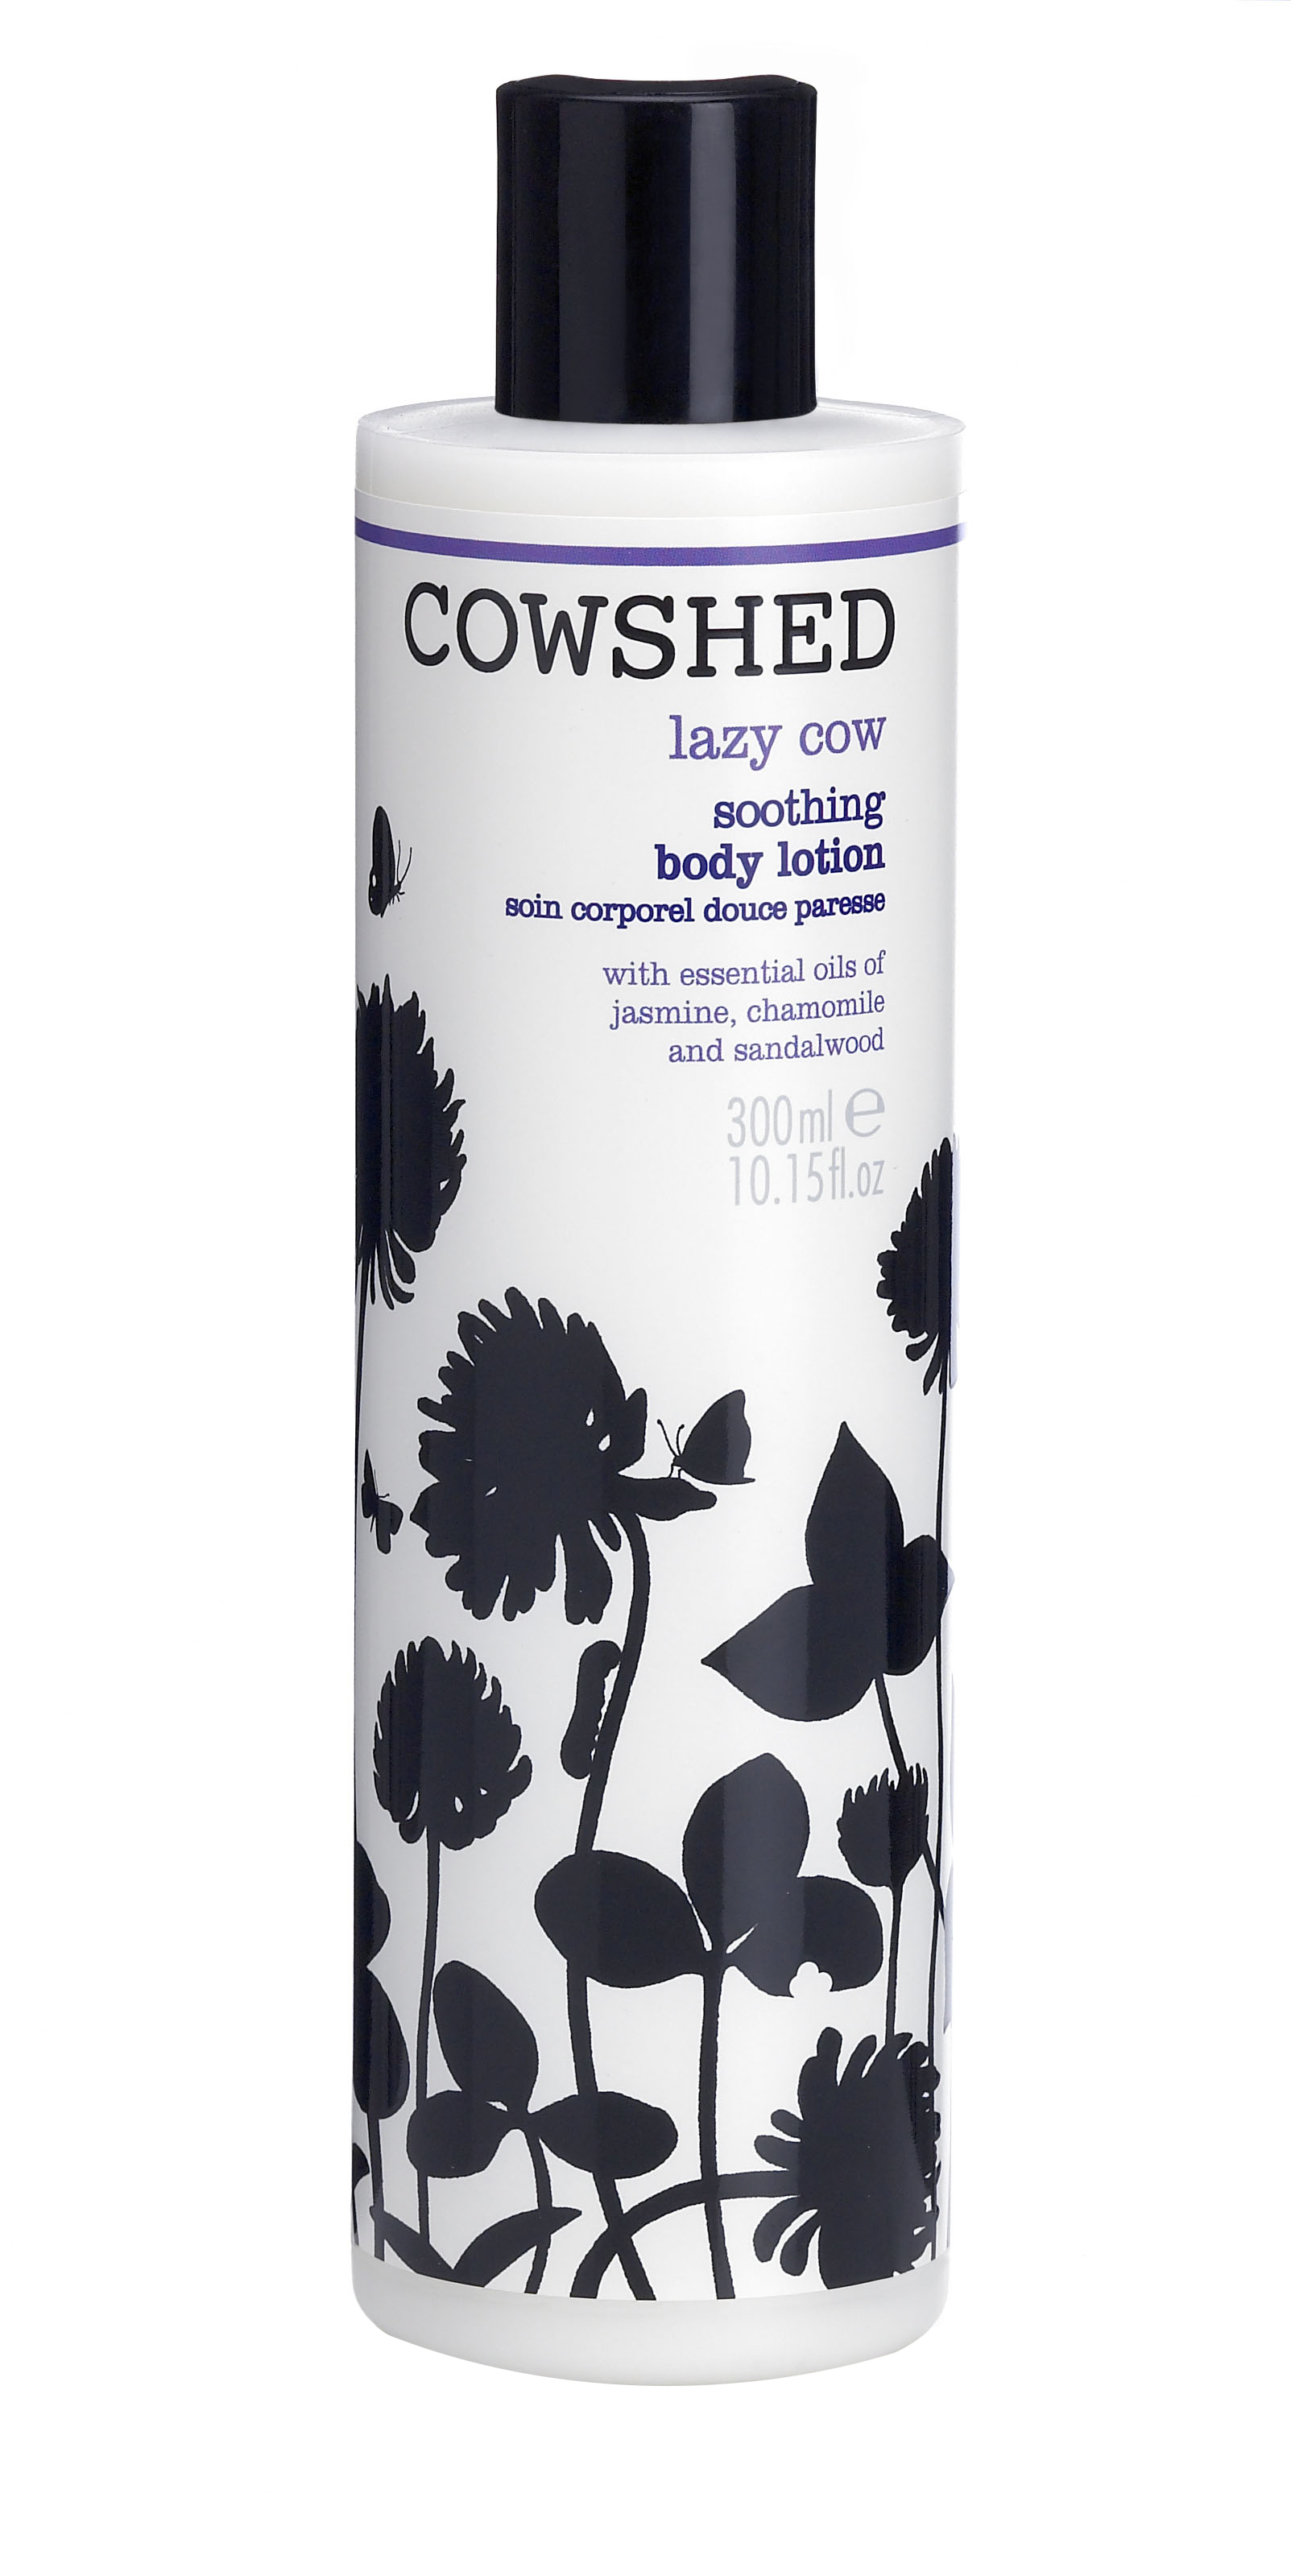 Billede af Cowshed Lazy Cow Soothing Body Lotion 300 ml.